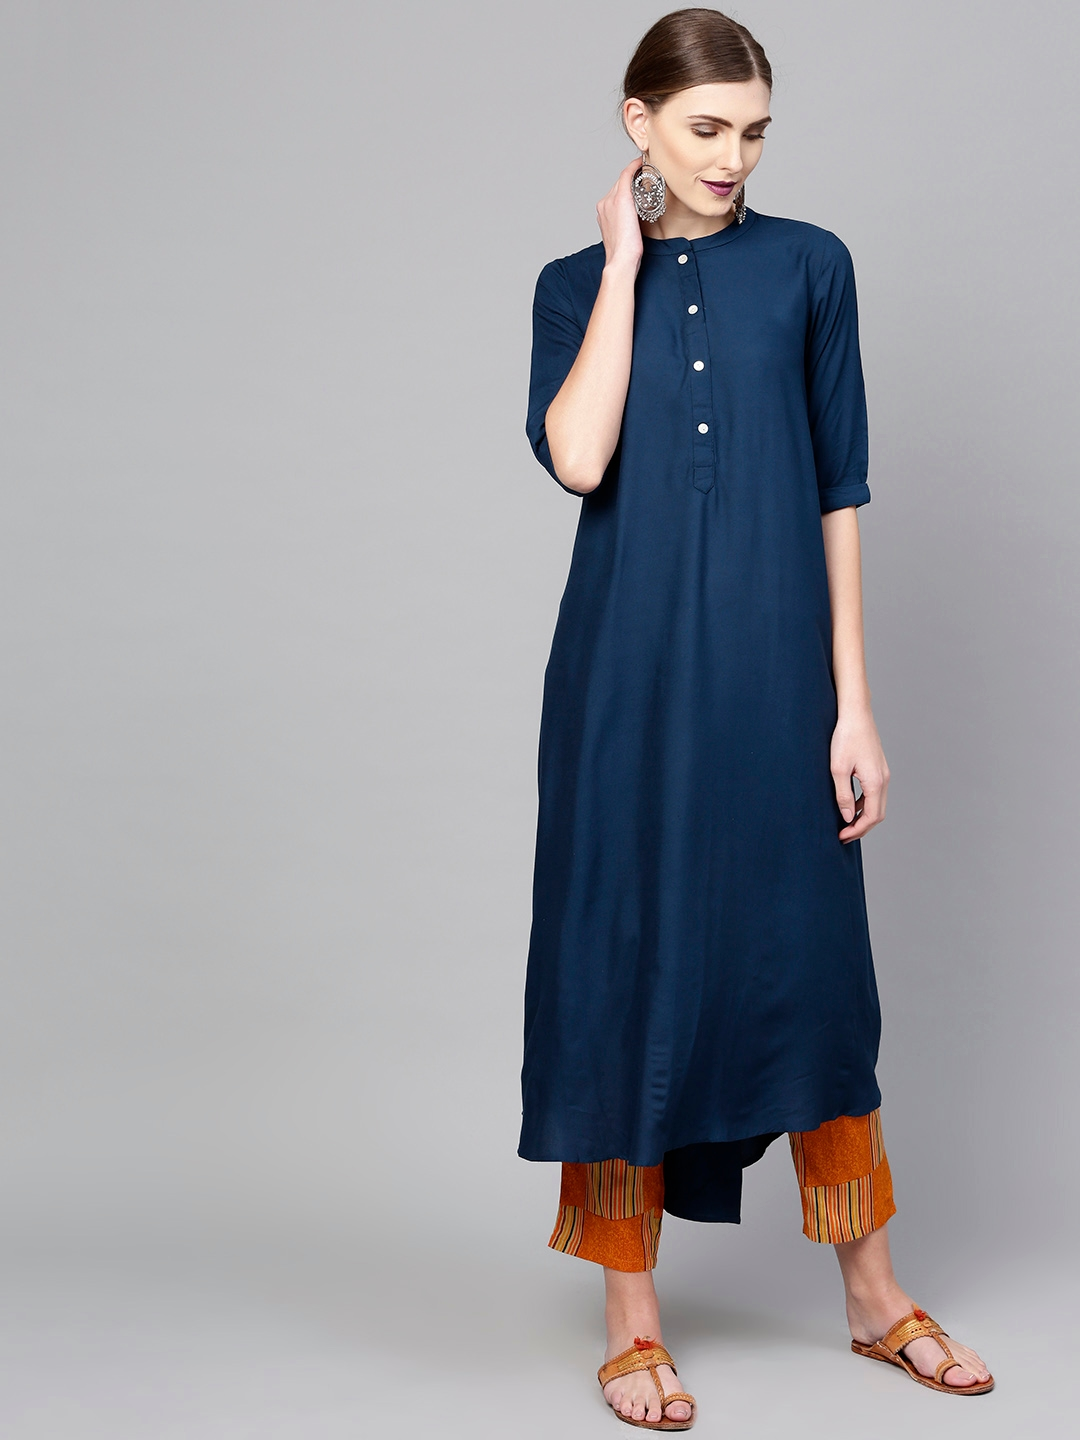 0c7d82a83 Libas Women Teal Blue   Orange Solid Kurta with Trousers. Best Price  ...